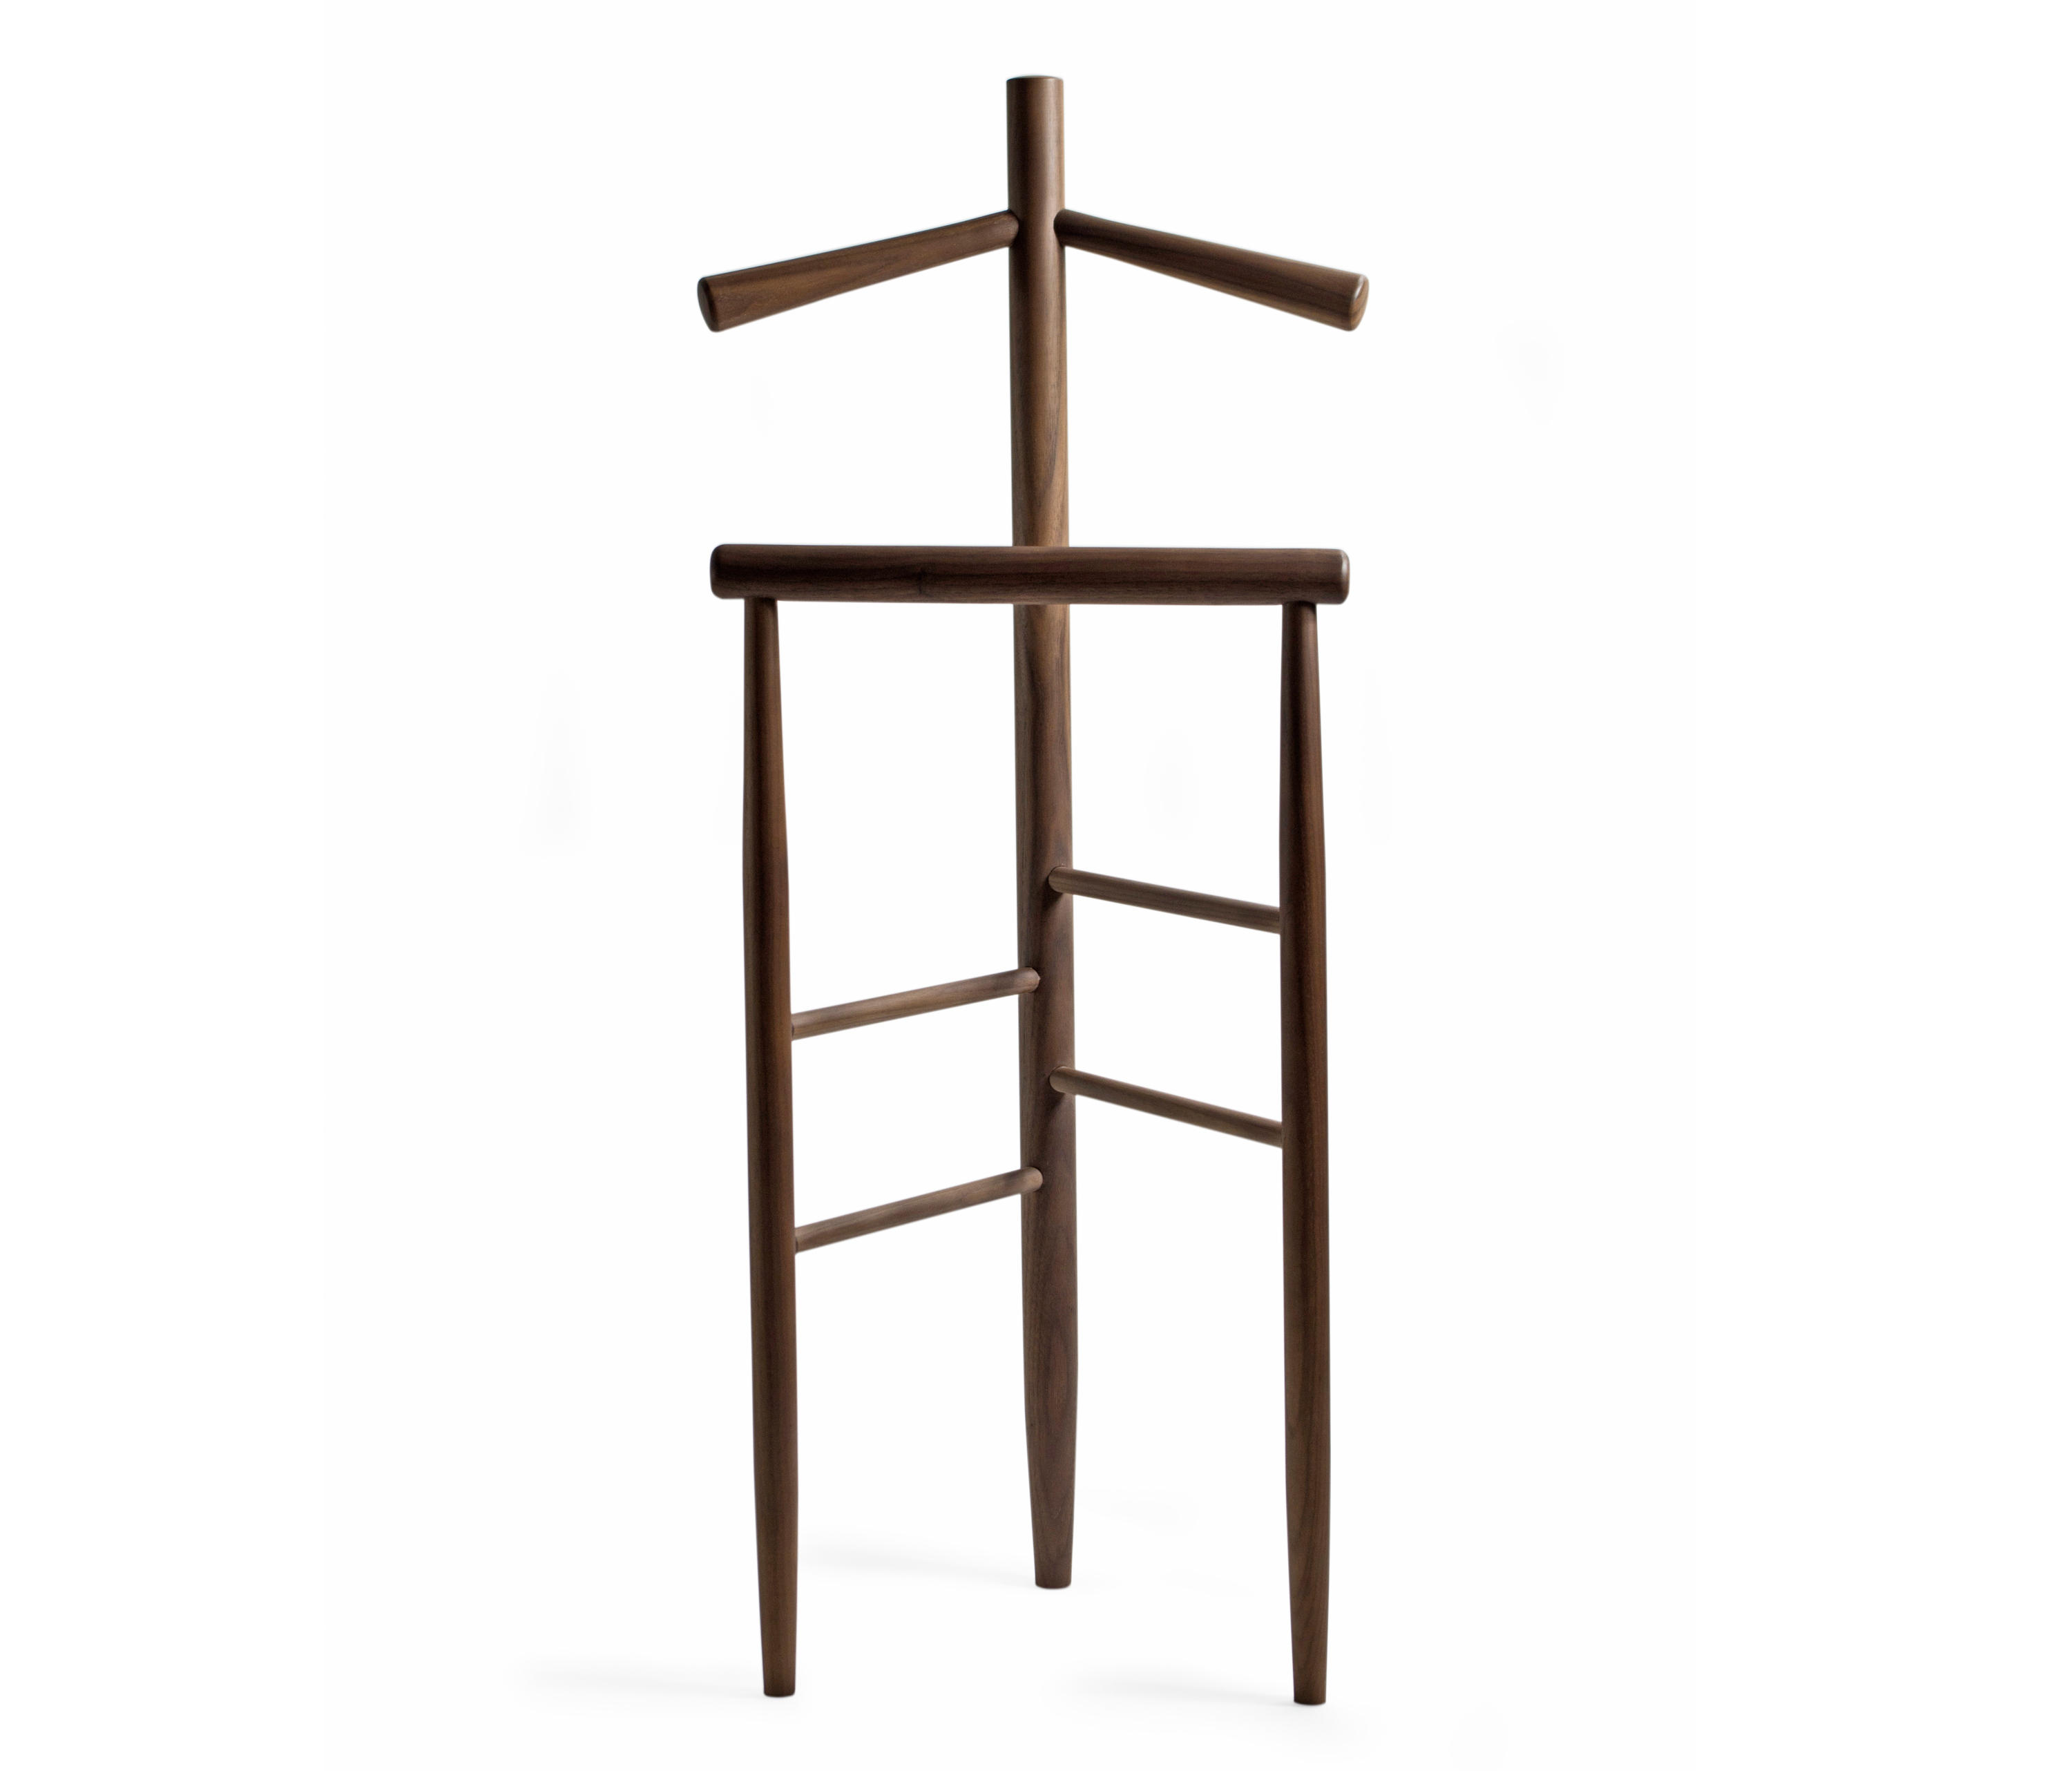 mori clothes valet stand clothes racks from internoitaliano architonic. Black Bedroom Furniture Sets. Home Design Ideas